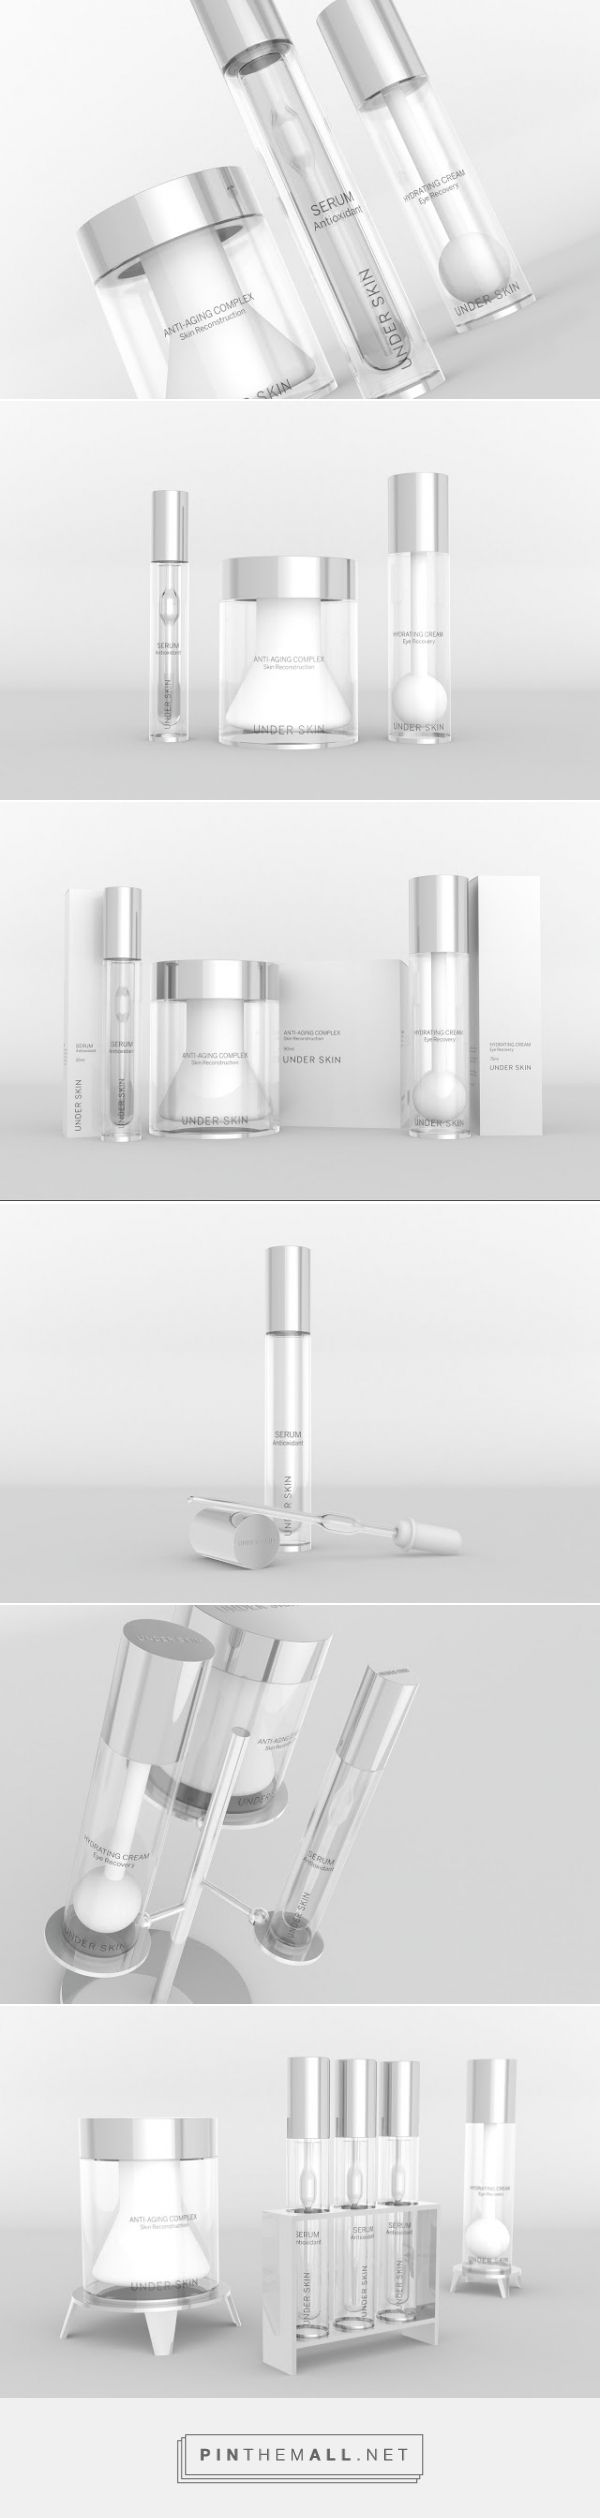 Under Skin #Beauty #Concept #packaging designed by Cristiano Gonçalo - http://www.packagingoftheworld.com/2015/06/under-skin-concept.html